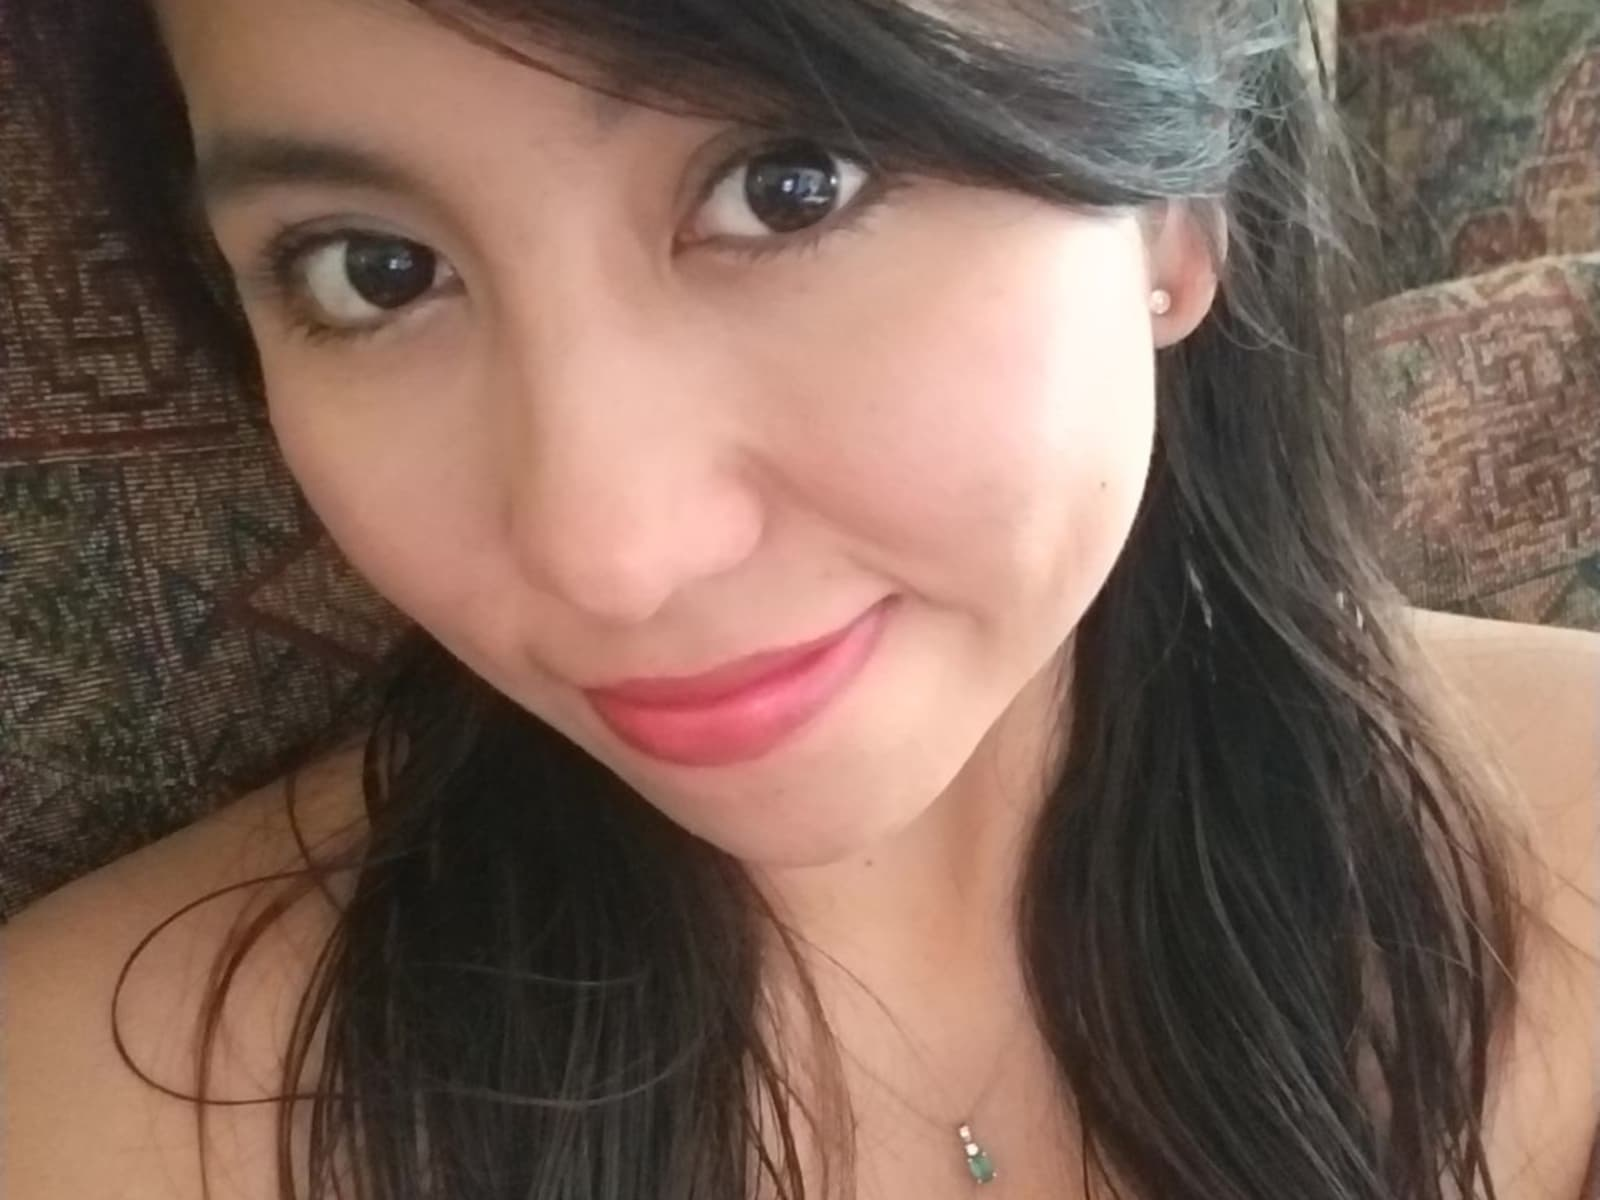 Nadia from Veracruz, Mexico